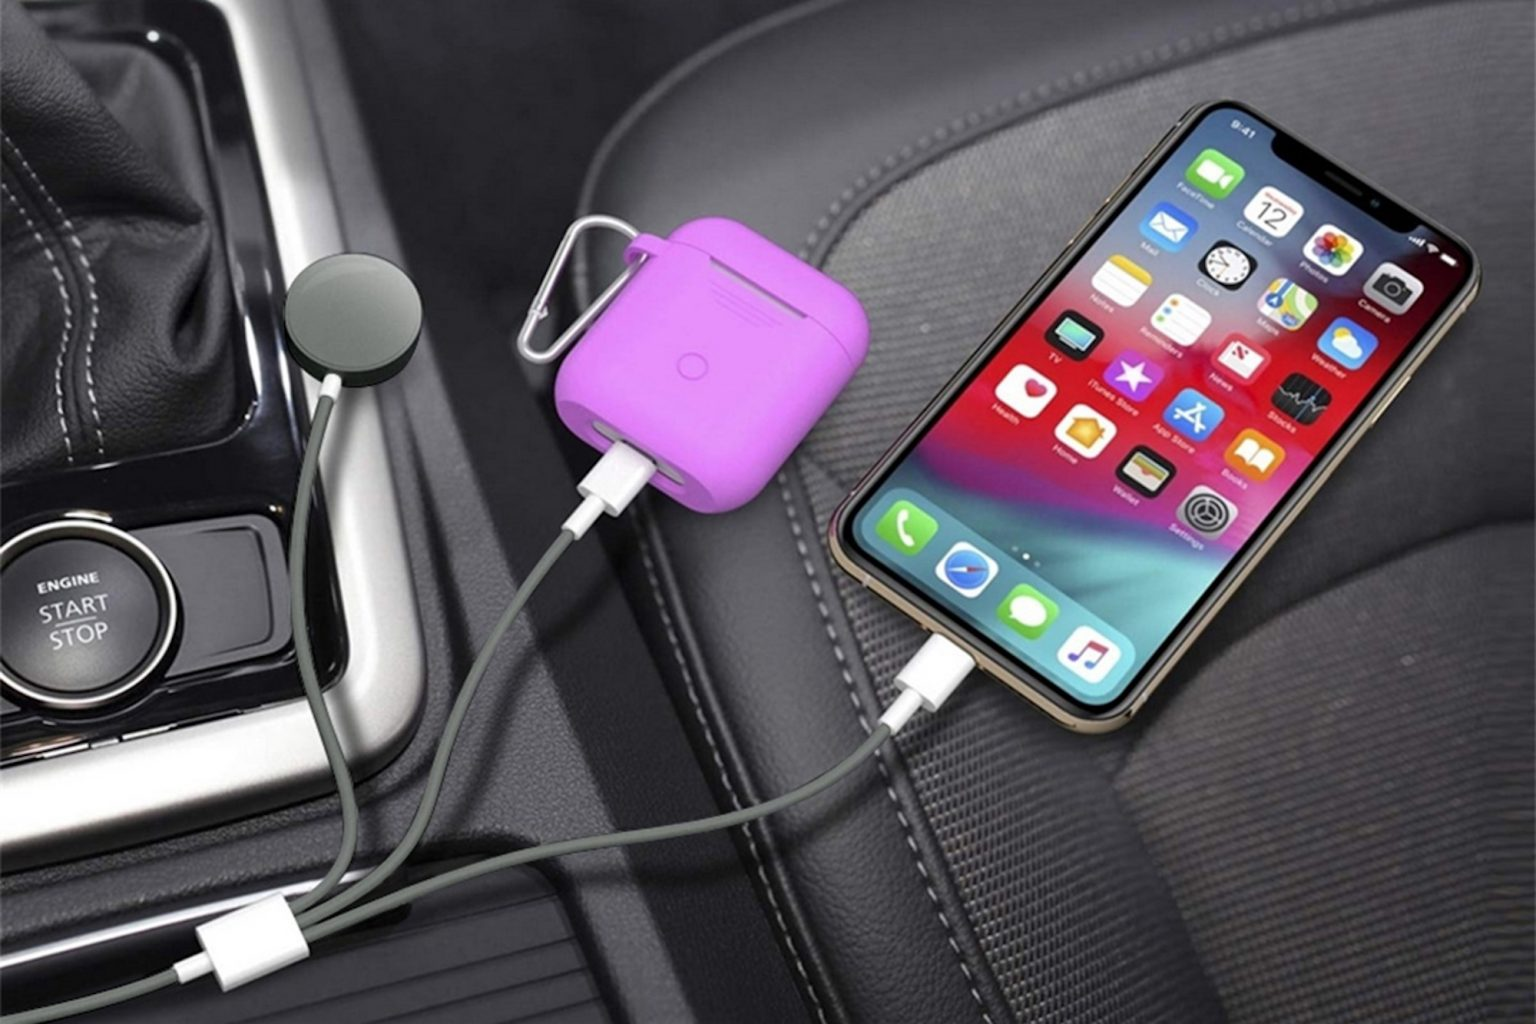 This 3-in-1 Apple Watch & Lightning Charger Cable can charge three devices at once